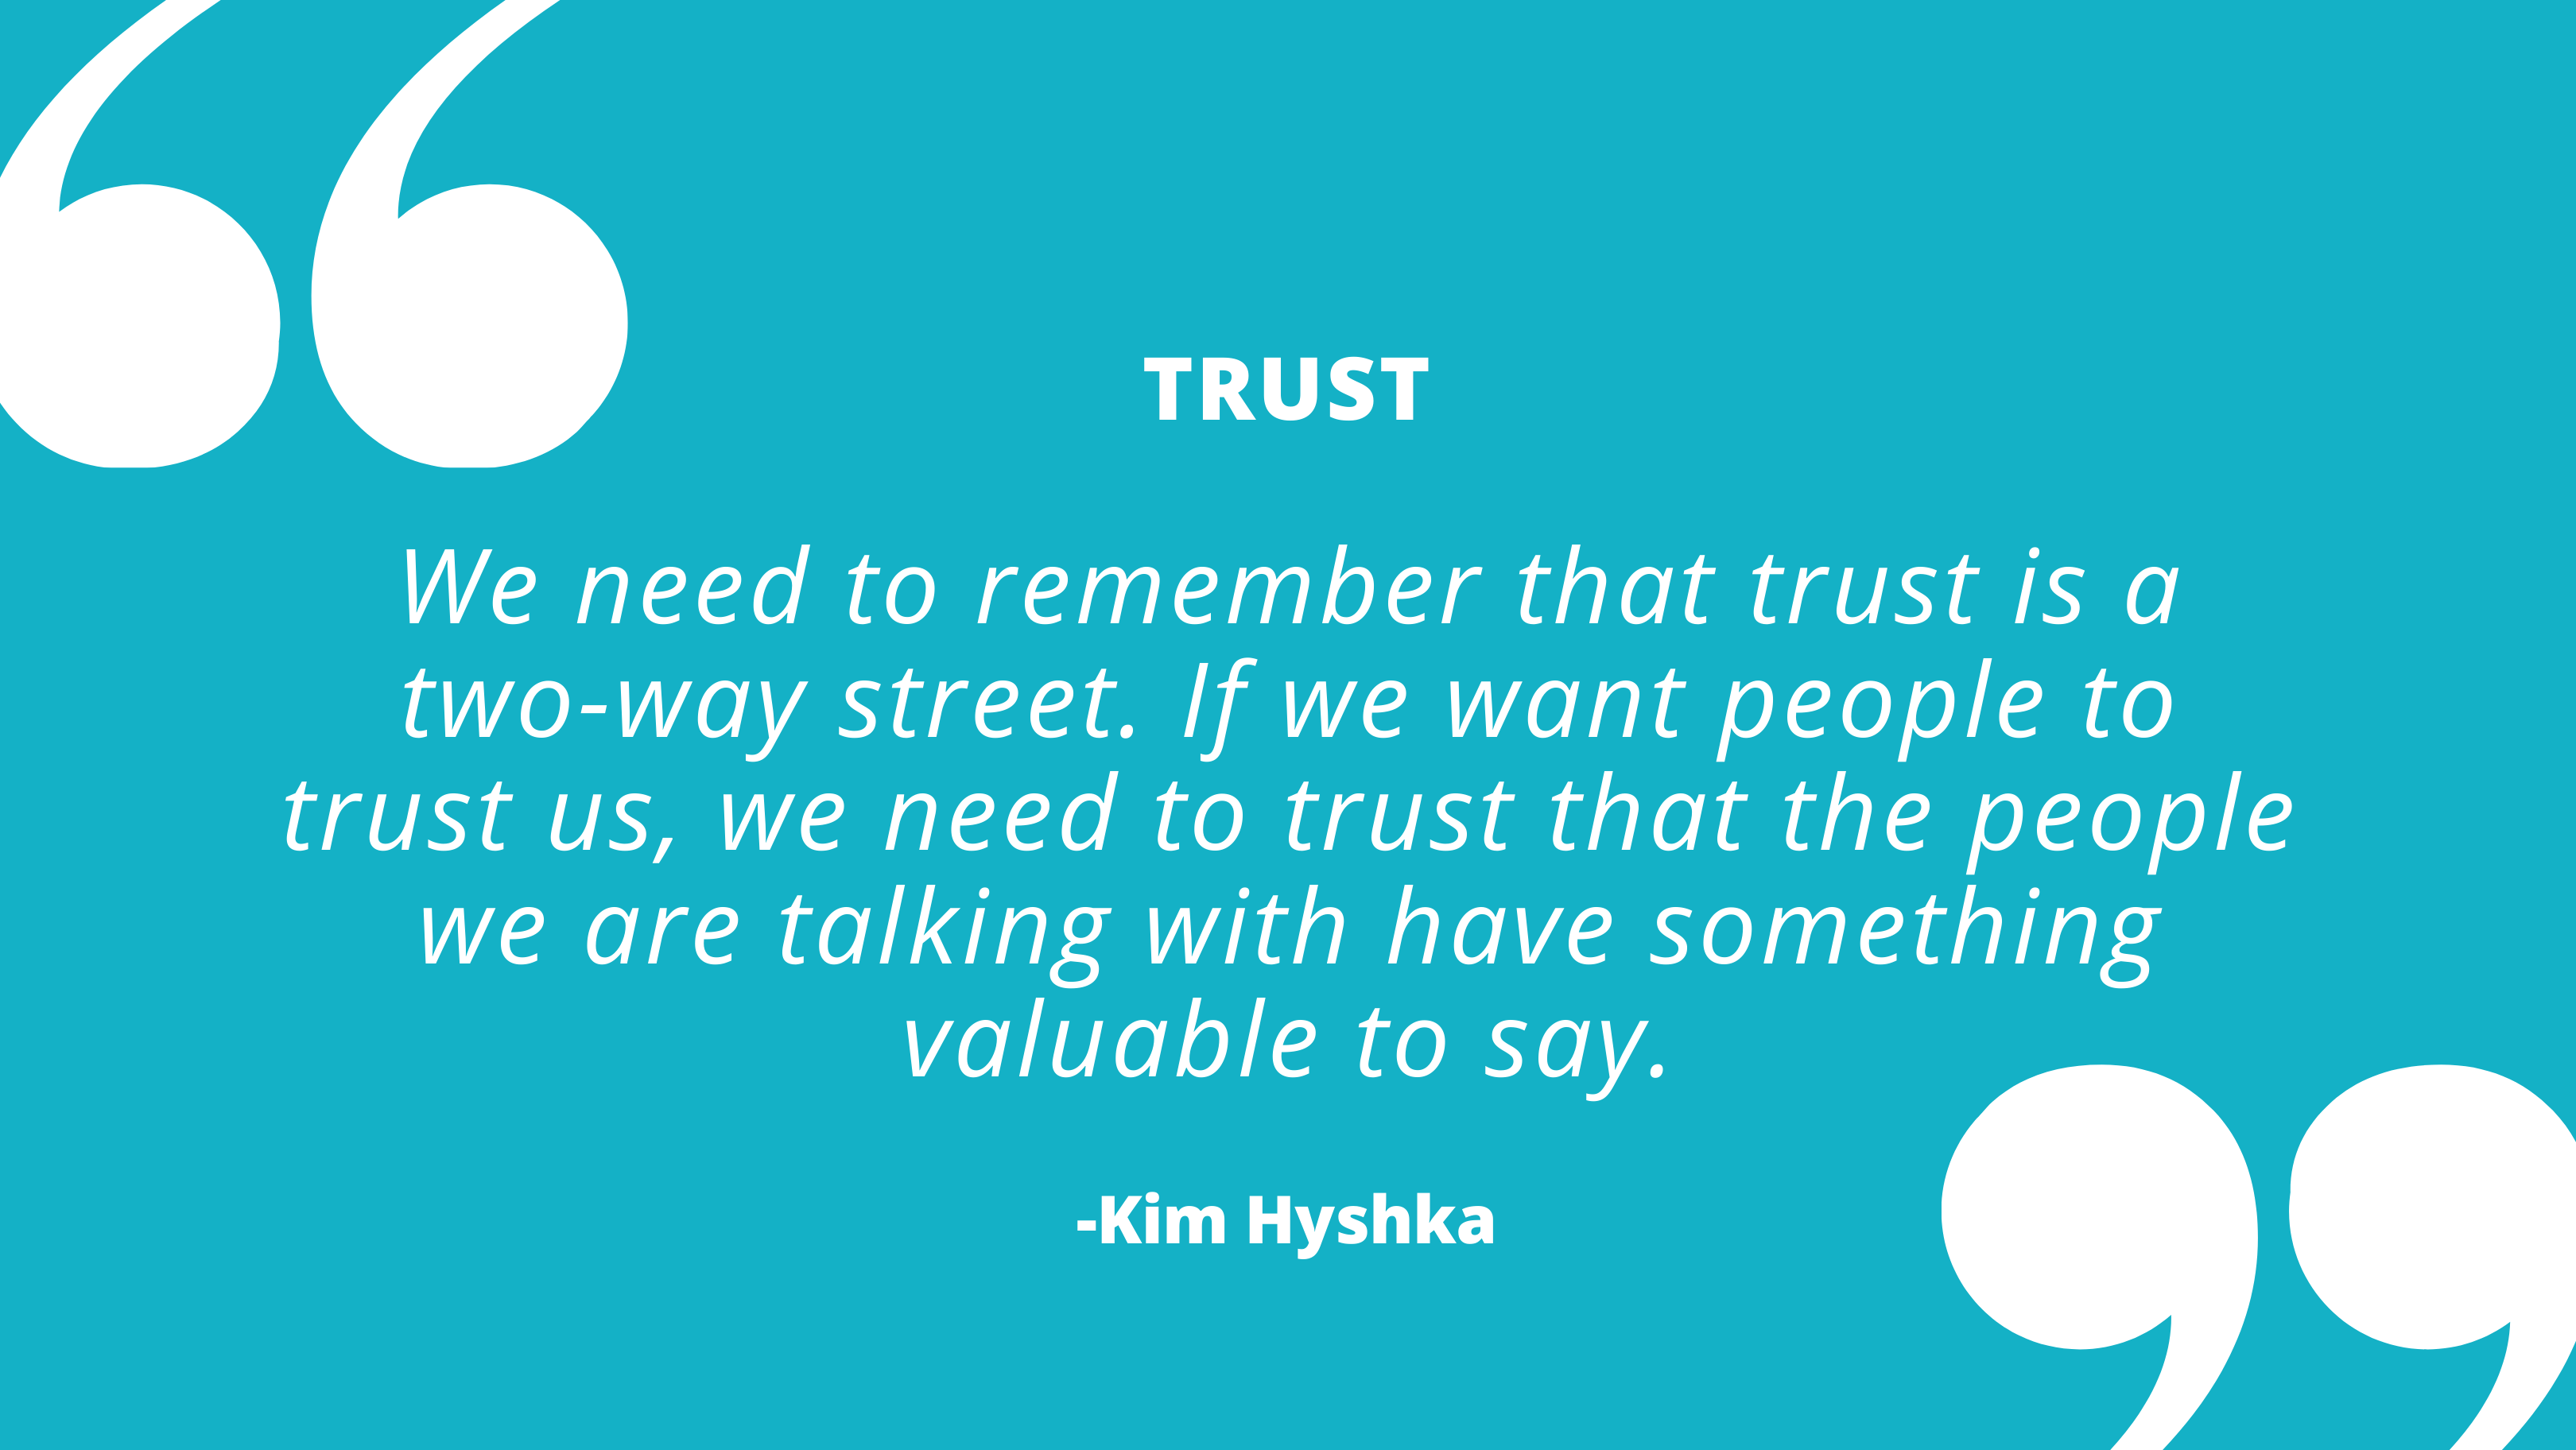 We need to remember that trust is a two-way street. If we want people to trust us, we need to trust that our stakeholders have something valuable to say. - Kim Hyshka, Dialogue Partners